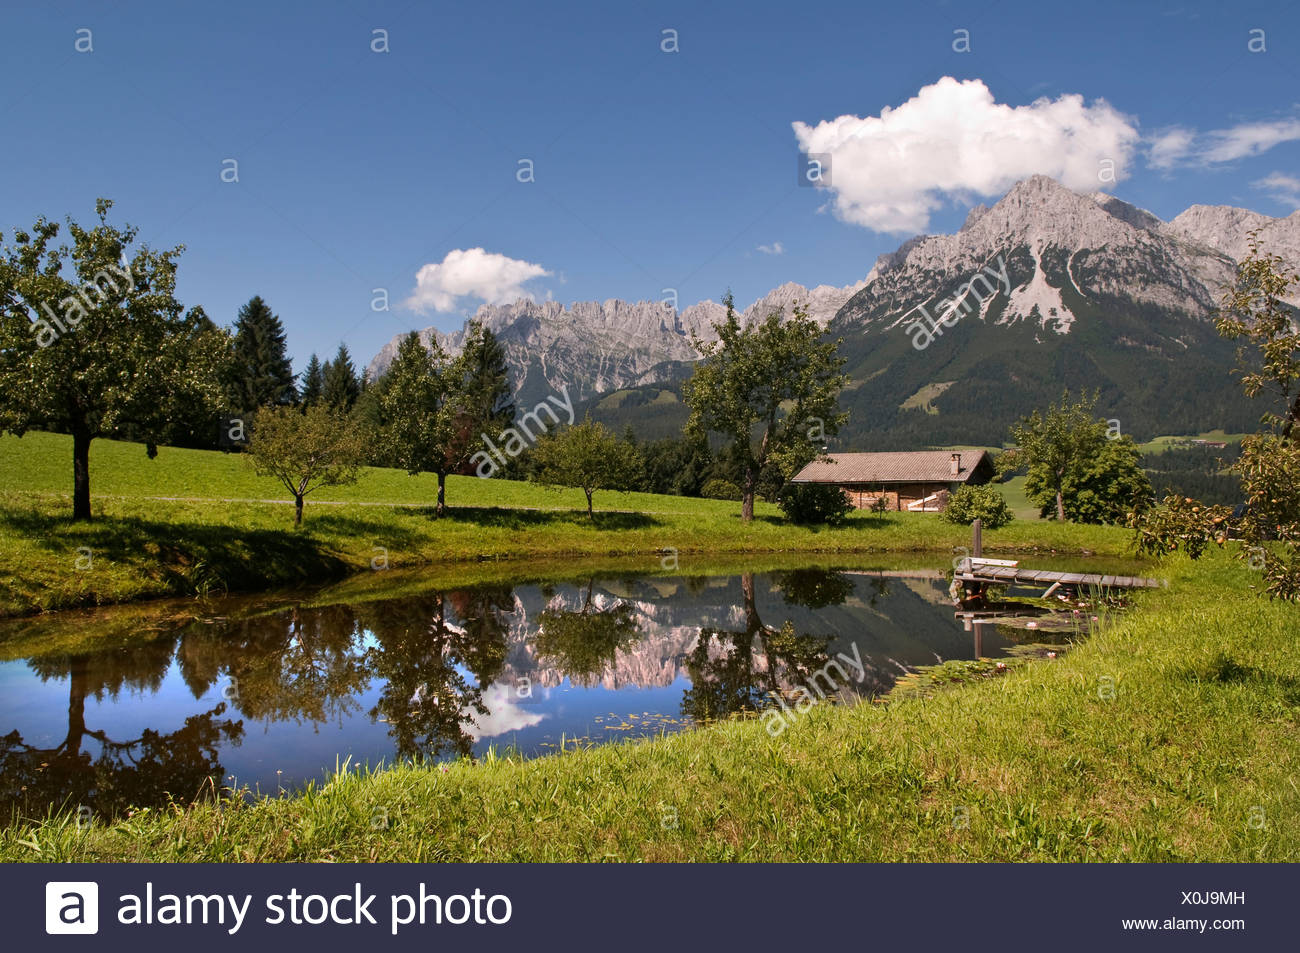 Bergsee Lake in front of the Wilder Kaiser Range, Tirol, Austria, Europe - Stock Image